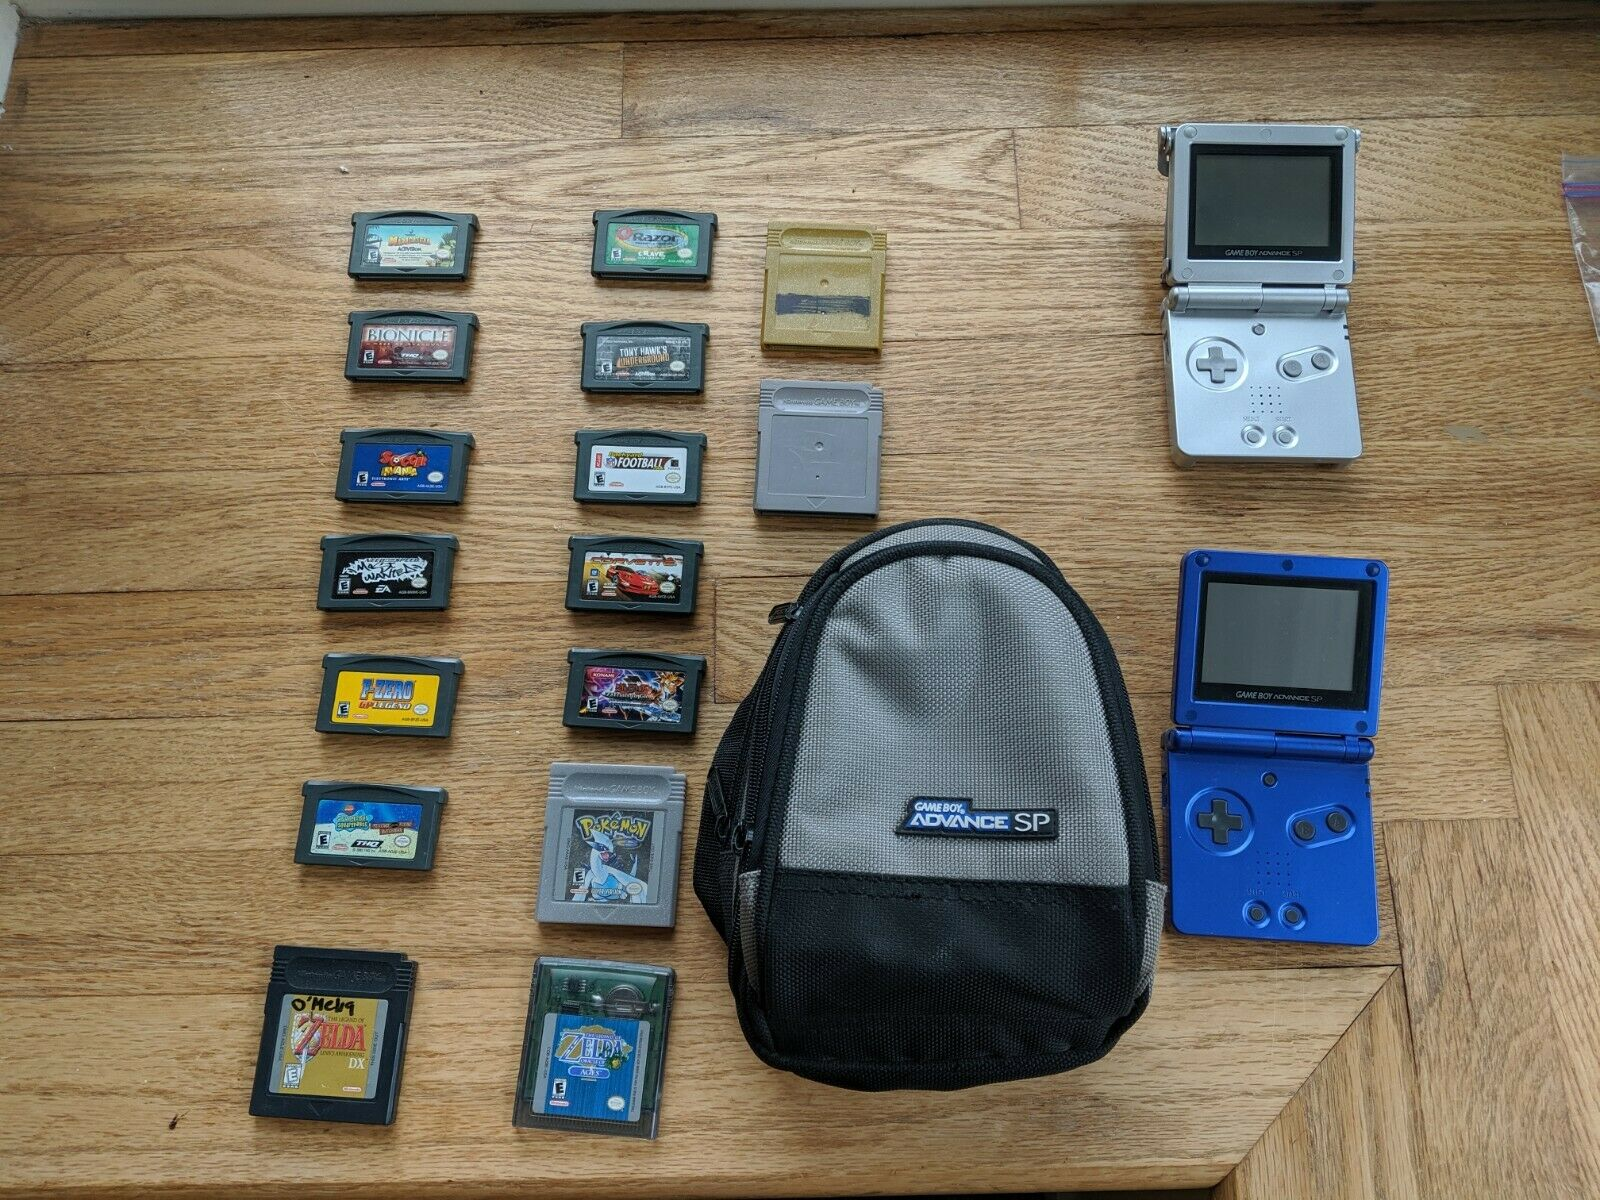 Nintendo Game Boy Advance SP and 16 Games including -